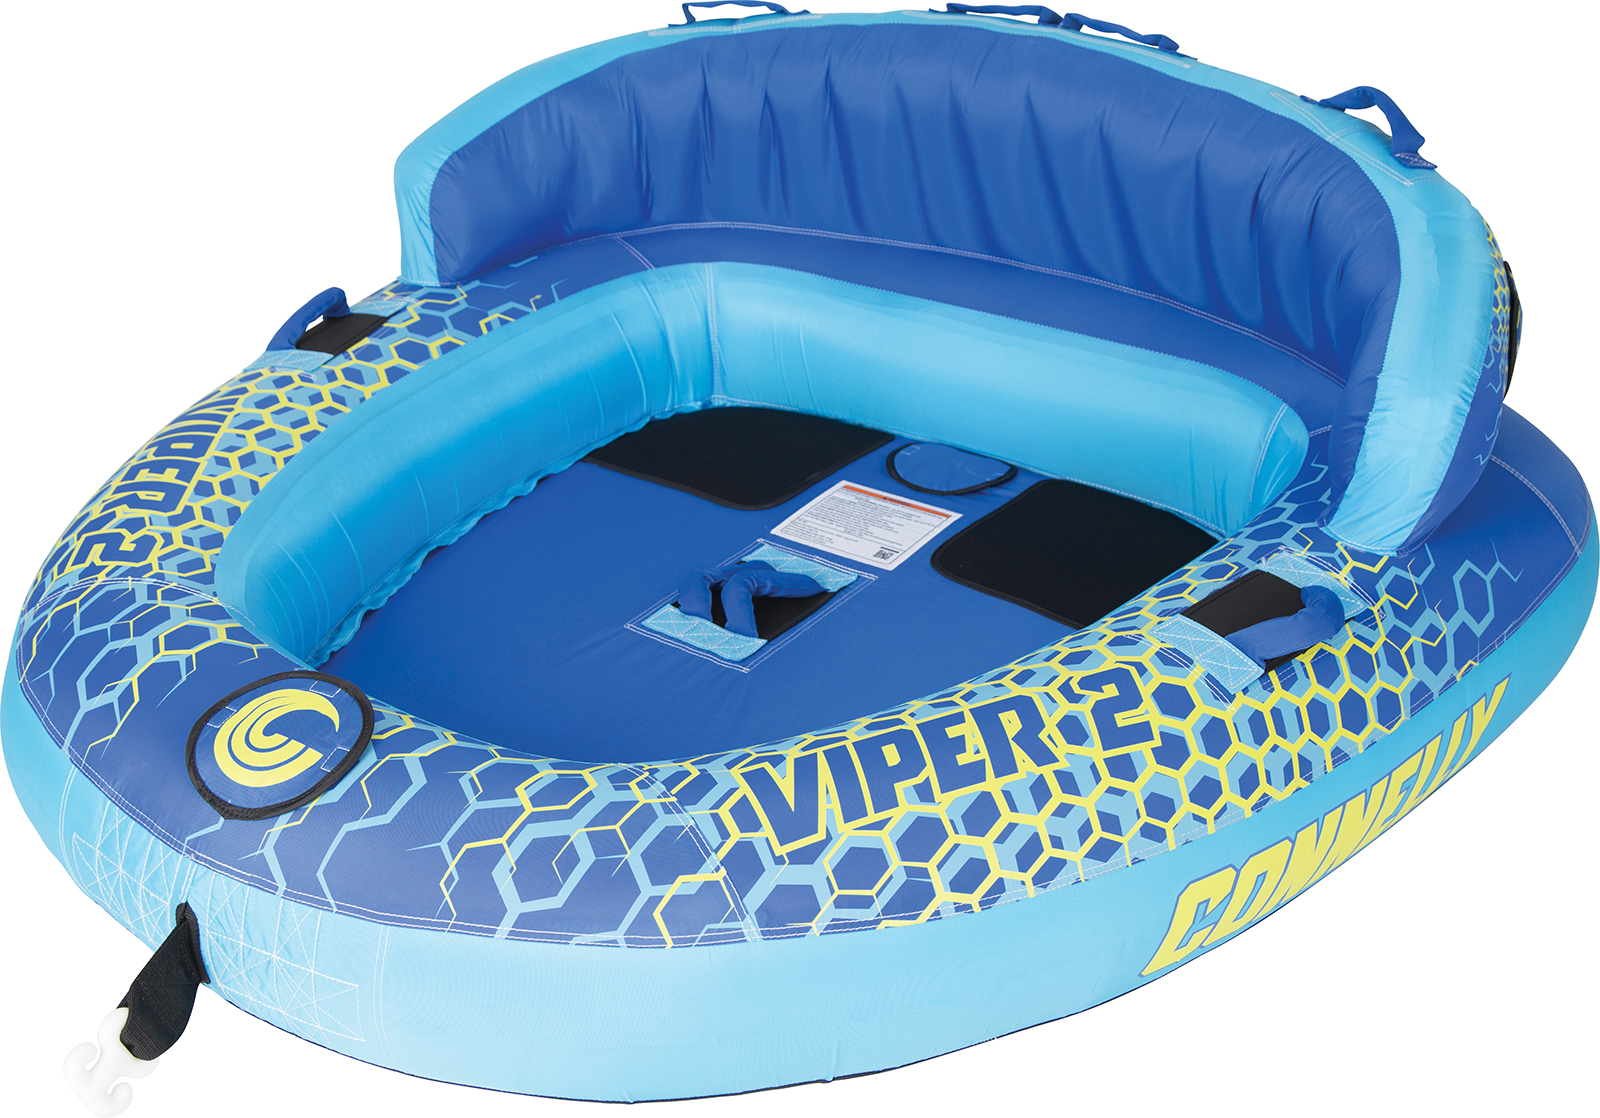 VIPER 2 TOWABLE TUBE CONNELLY 2019